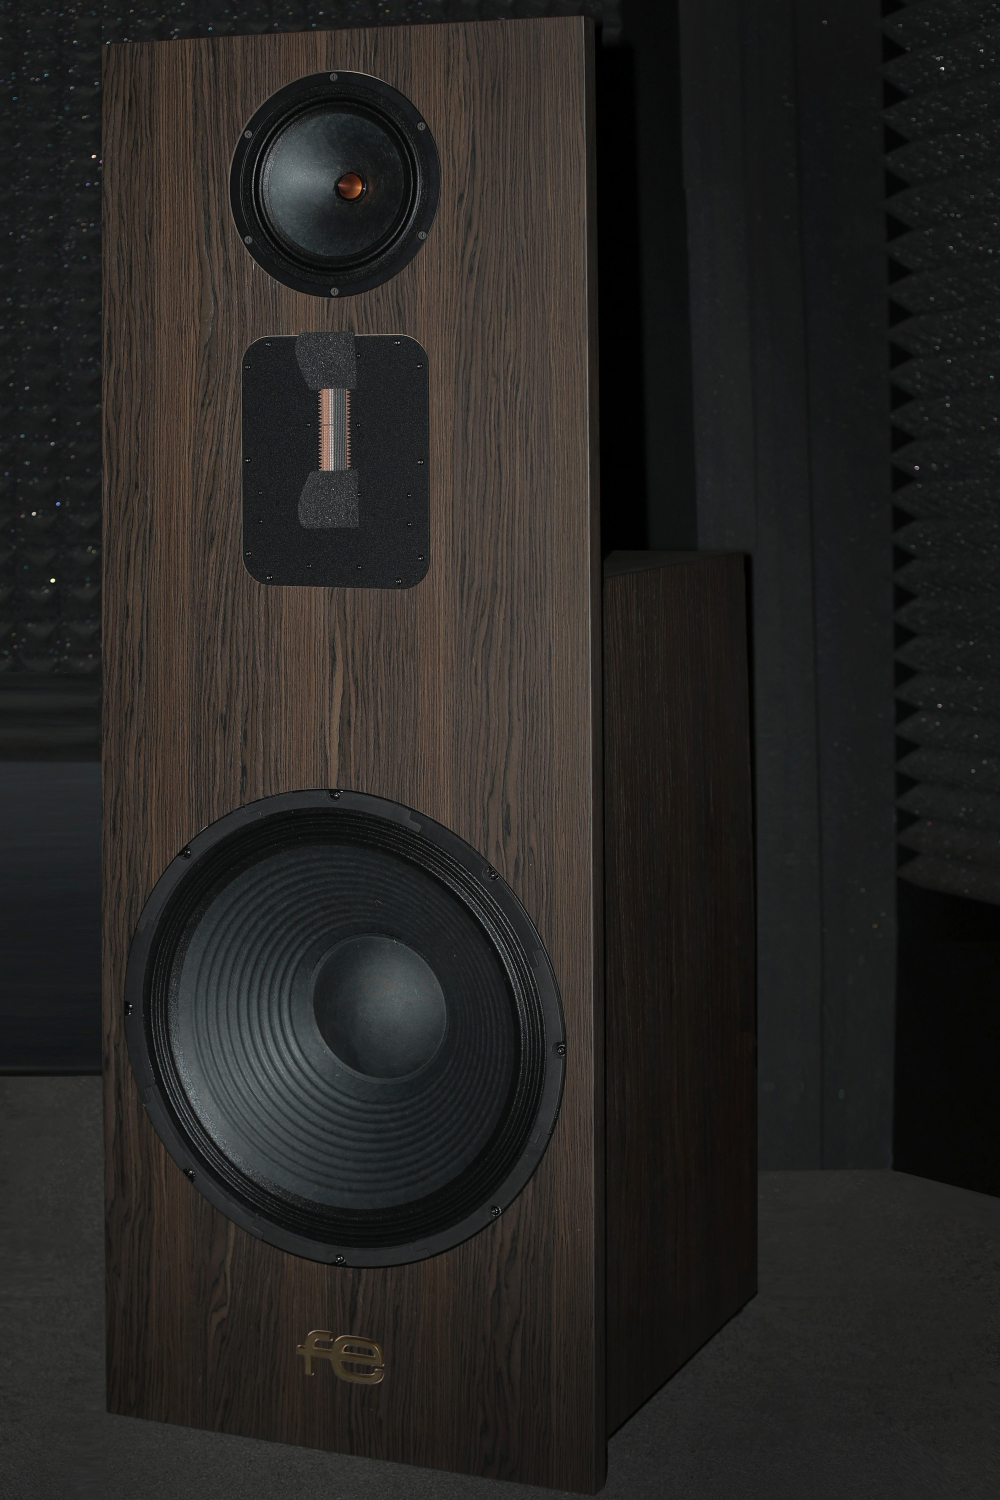 FE SPEAKERS front